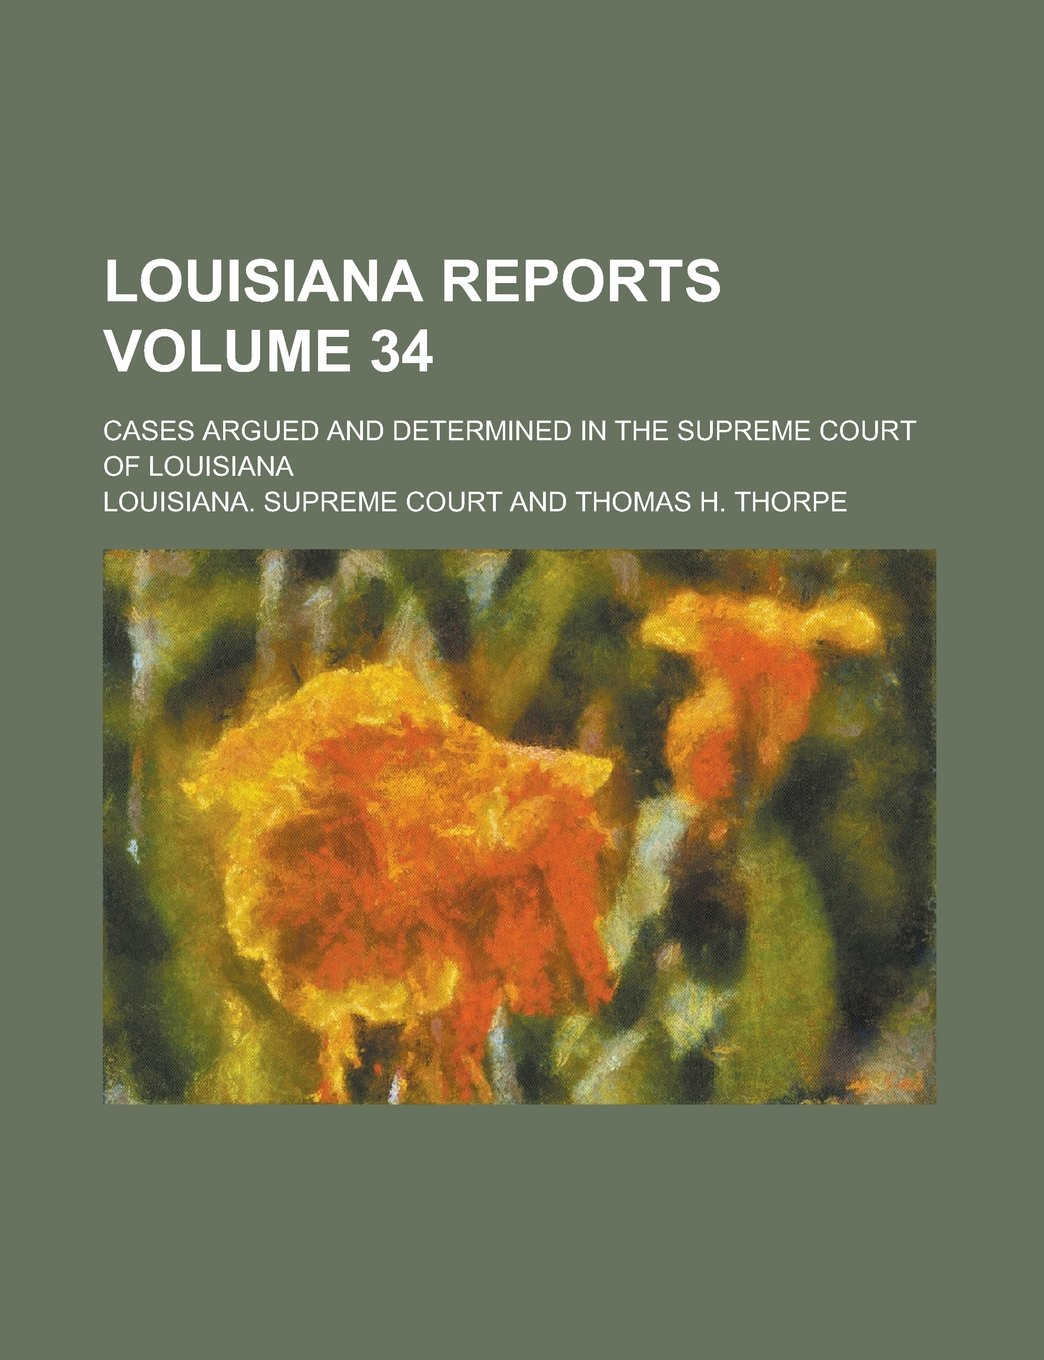 Louisiana Reports; Cases Argued and Determined in the Supreme Court of Louisiana Volume 34 PDF